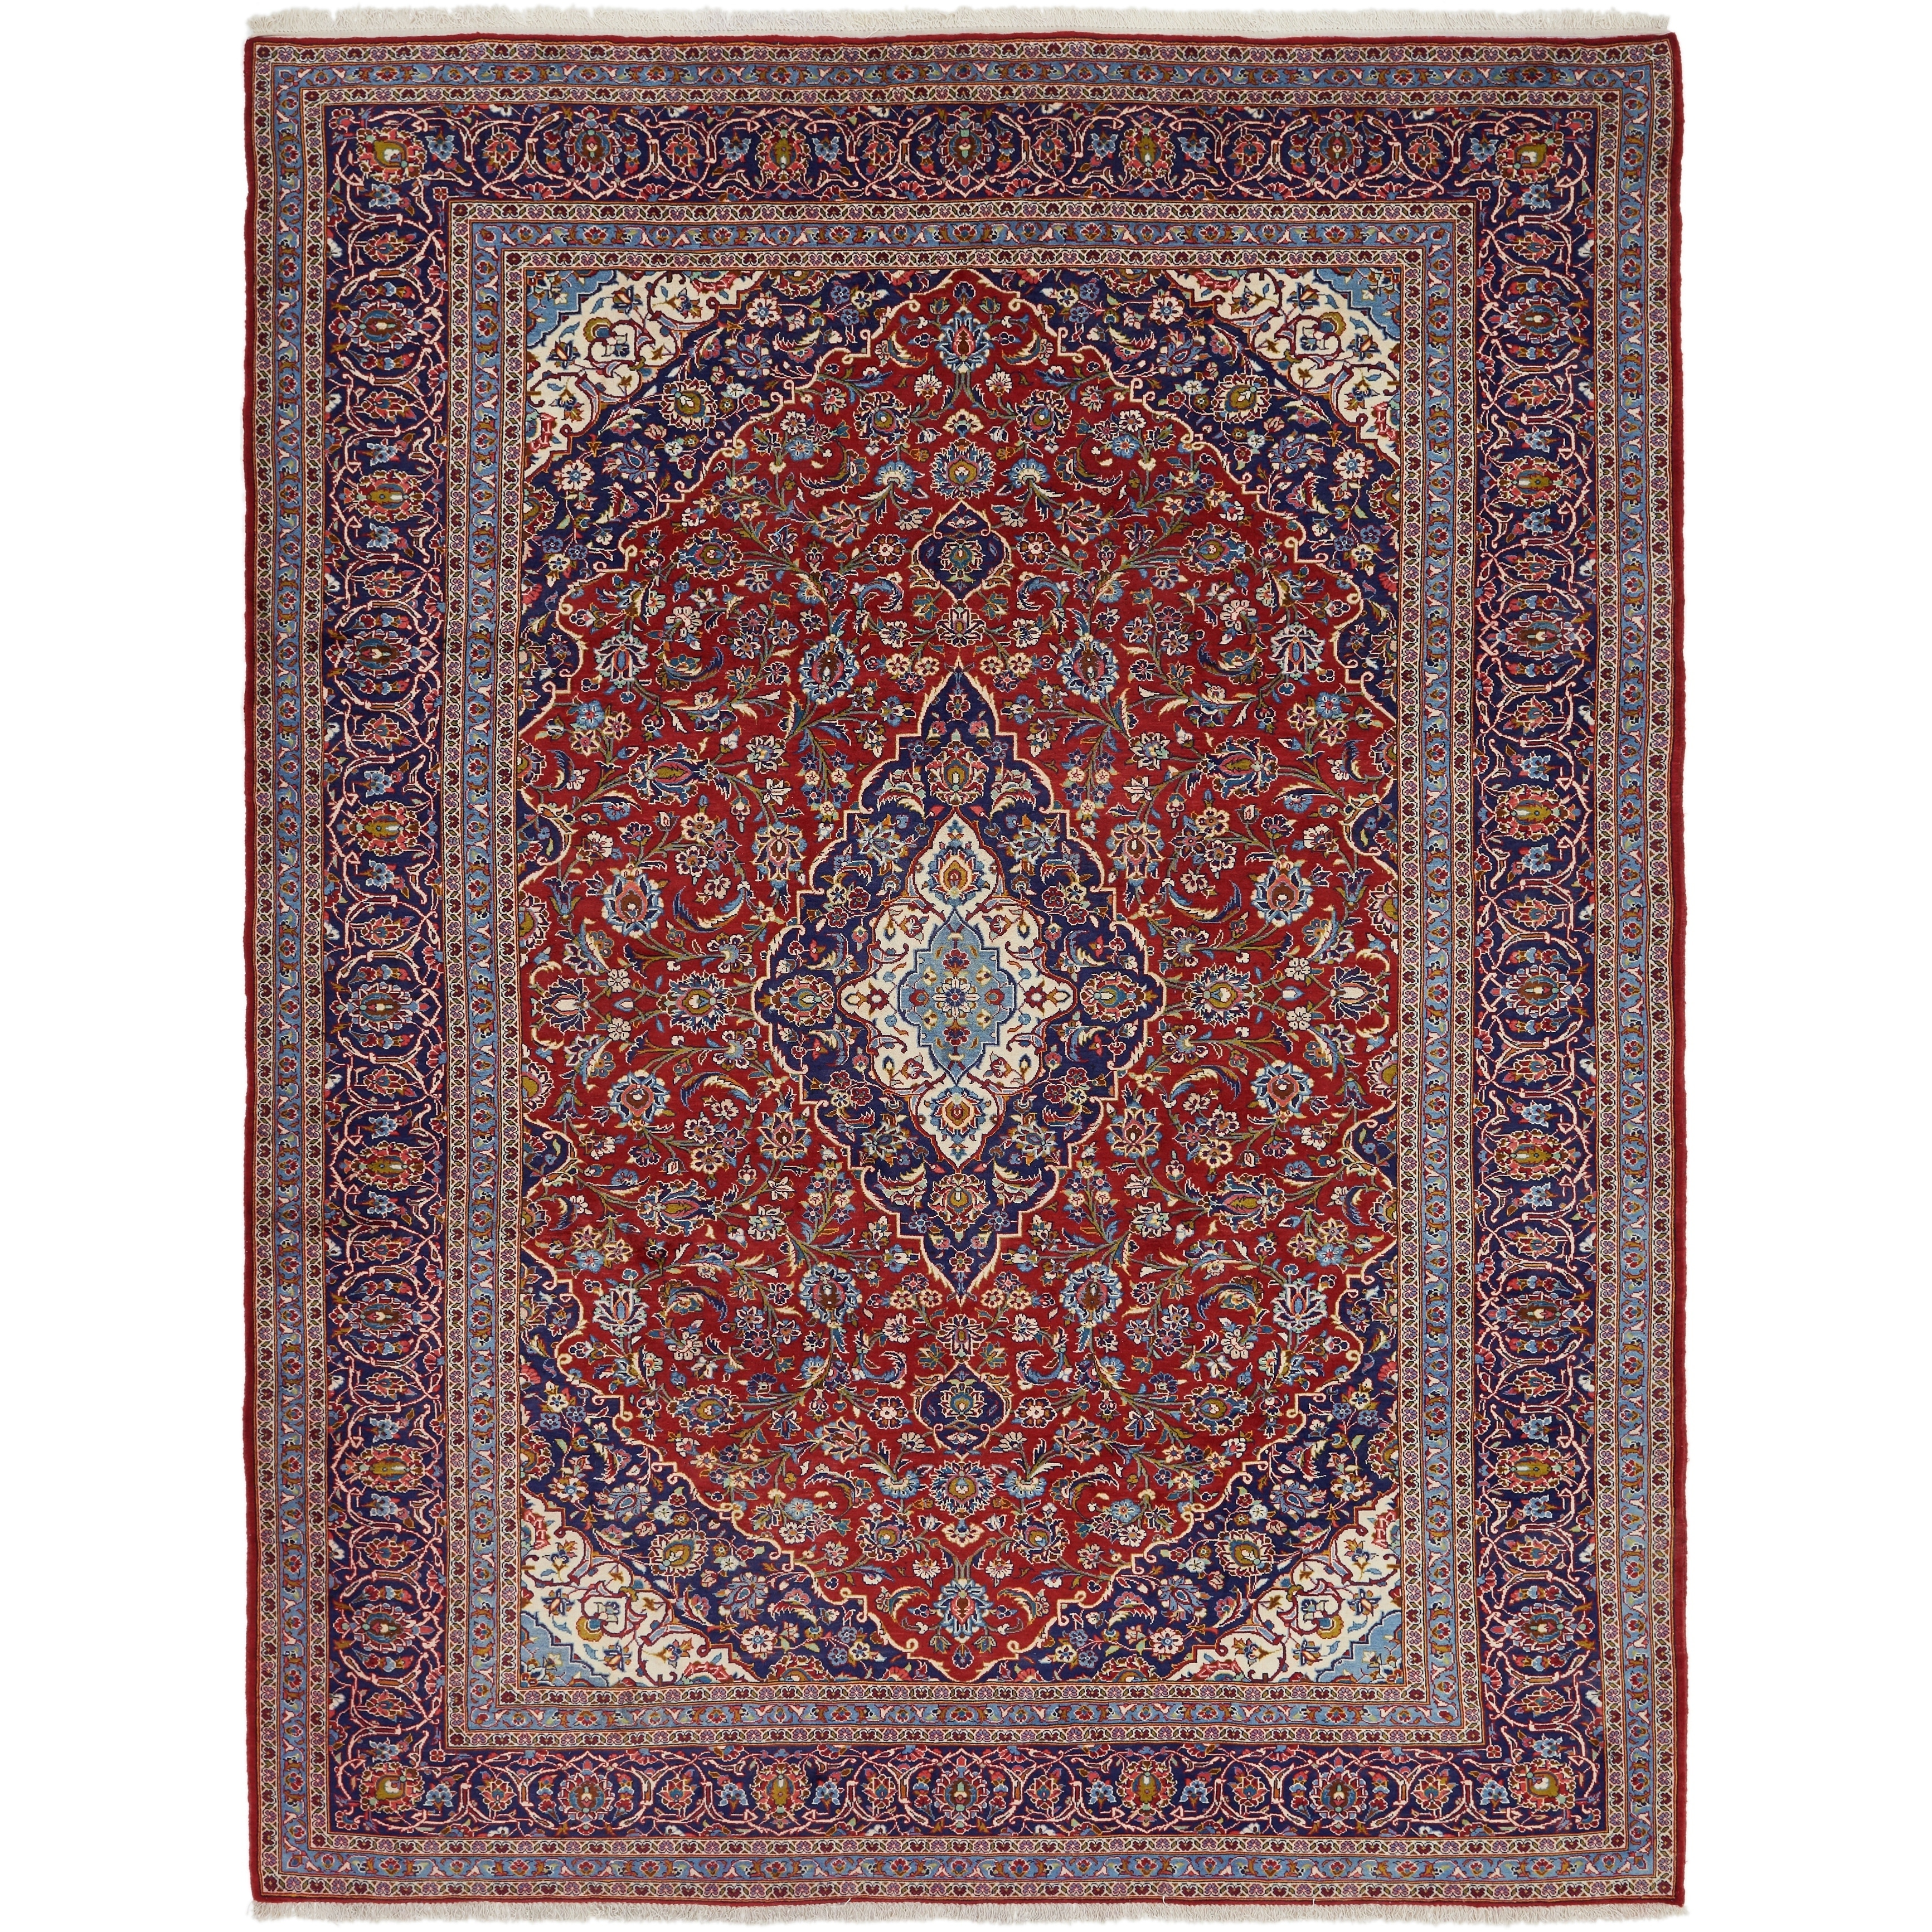 Hand Knotted Kashan Wool Area Rug - 9 10 x 12 10 (Red - 9 10 x 12 10)